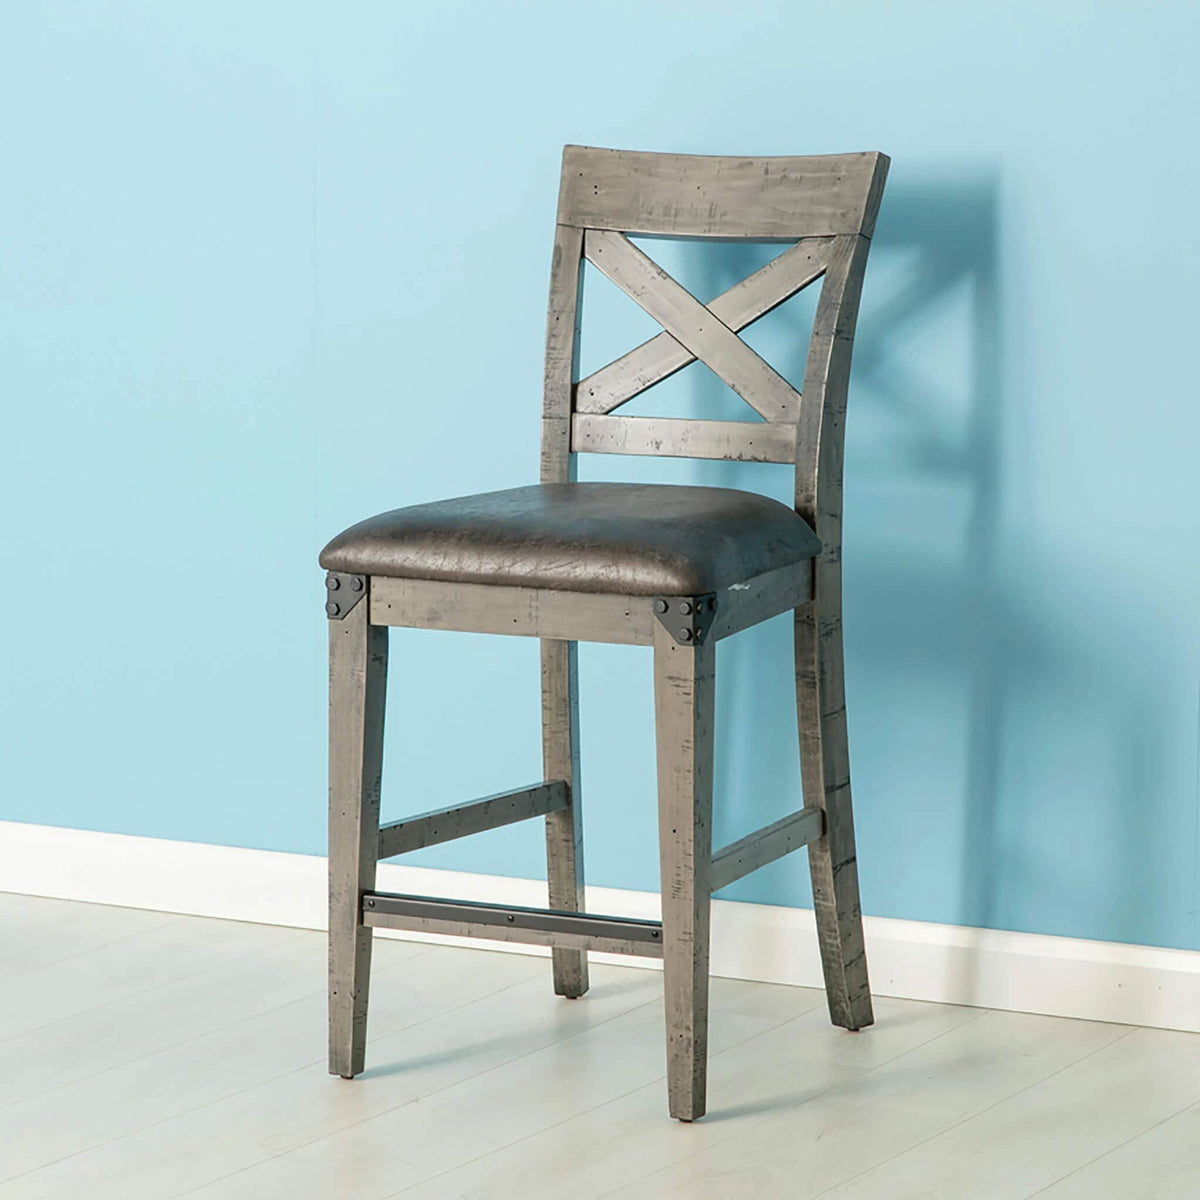 Brooklyn Industrial Cross Back Bar Stool from Roseland Furniture